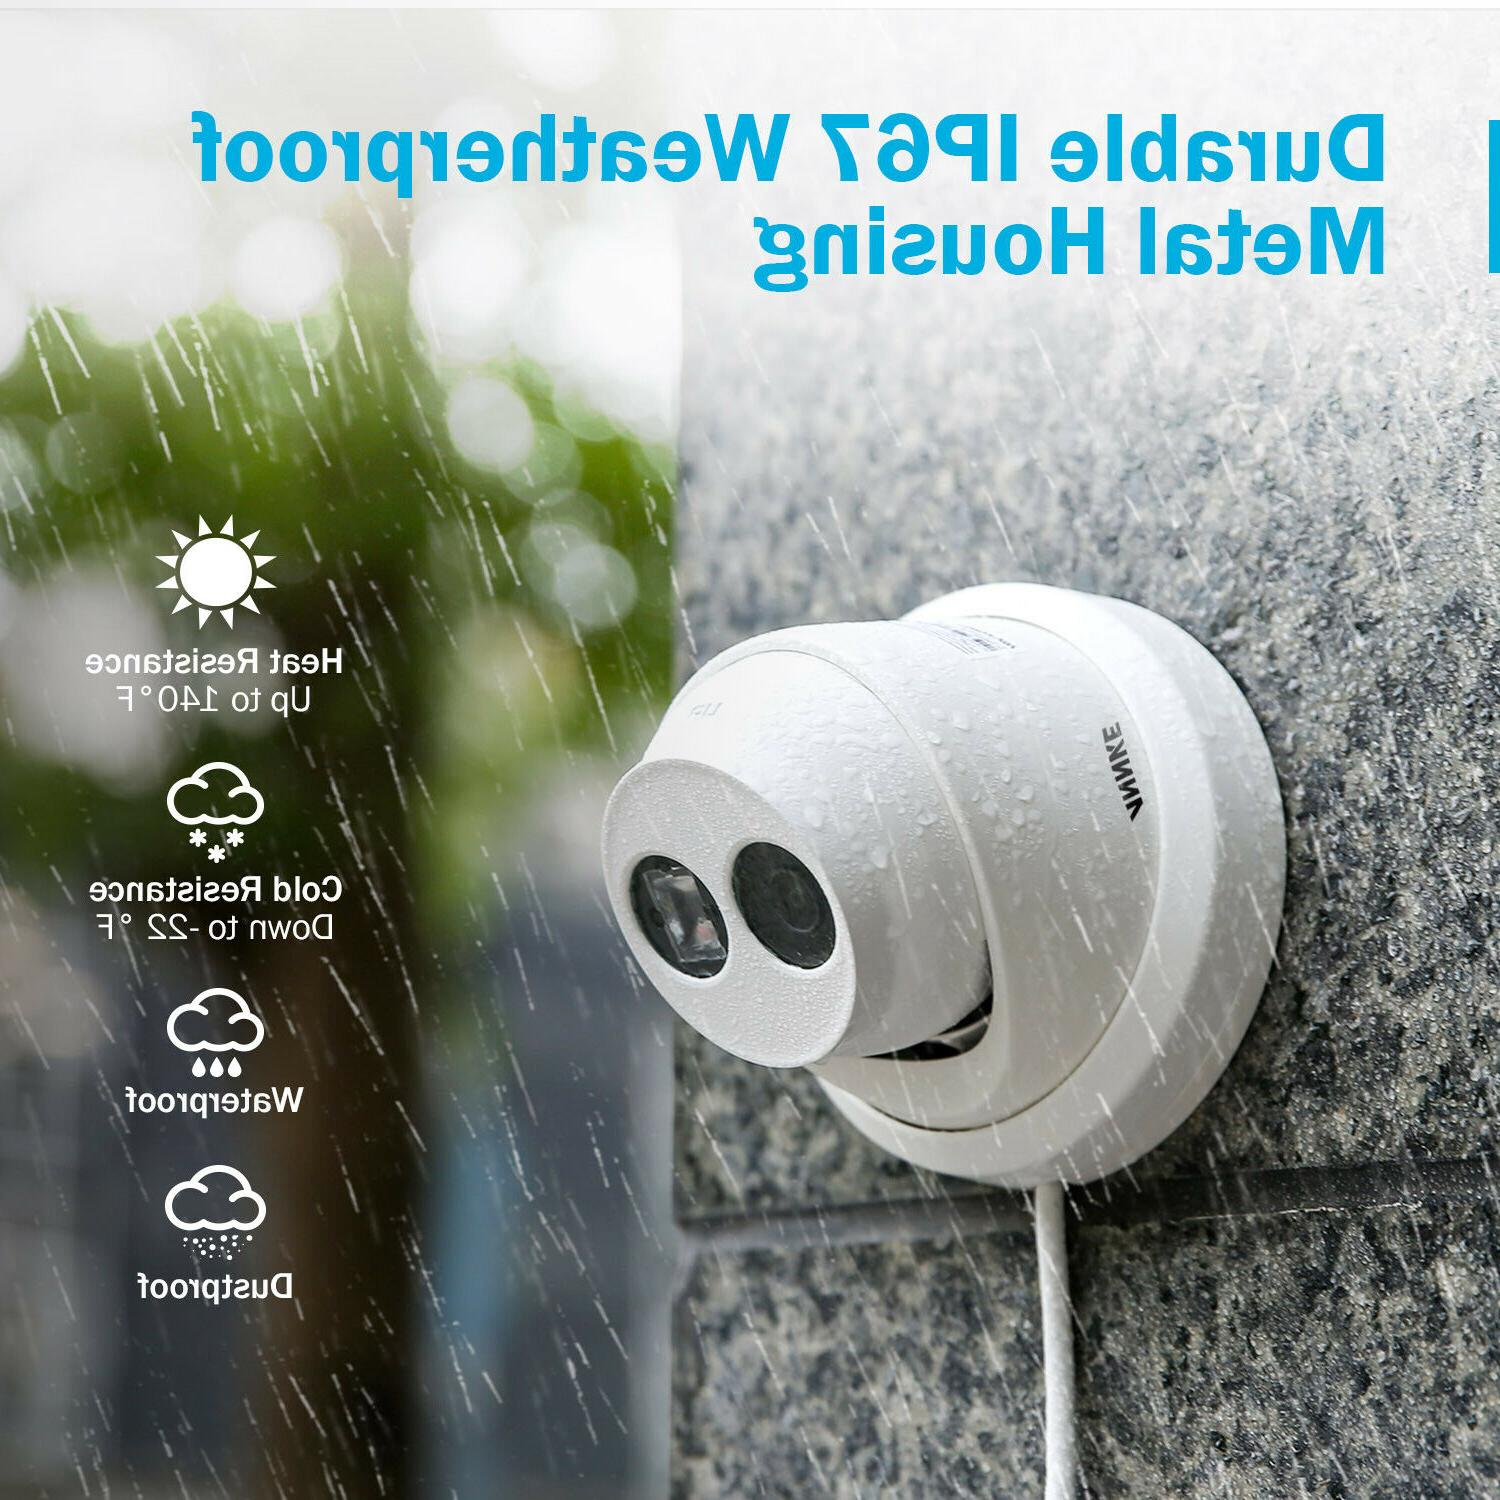 ANNKE 4K POE Outdoor Security IP Camera Motion Vision US